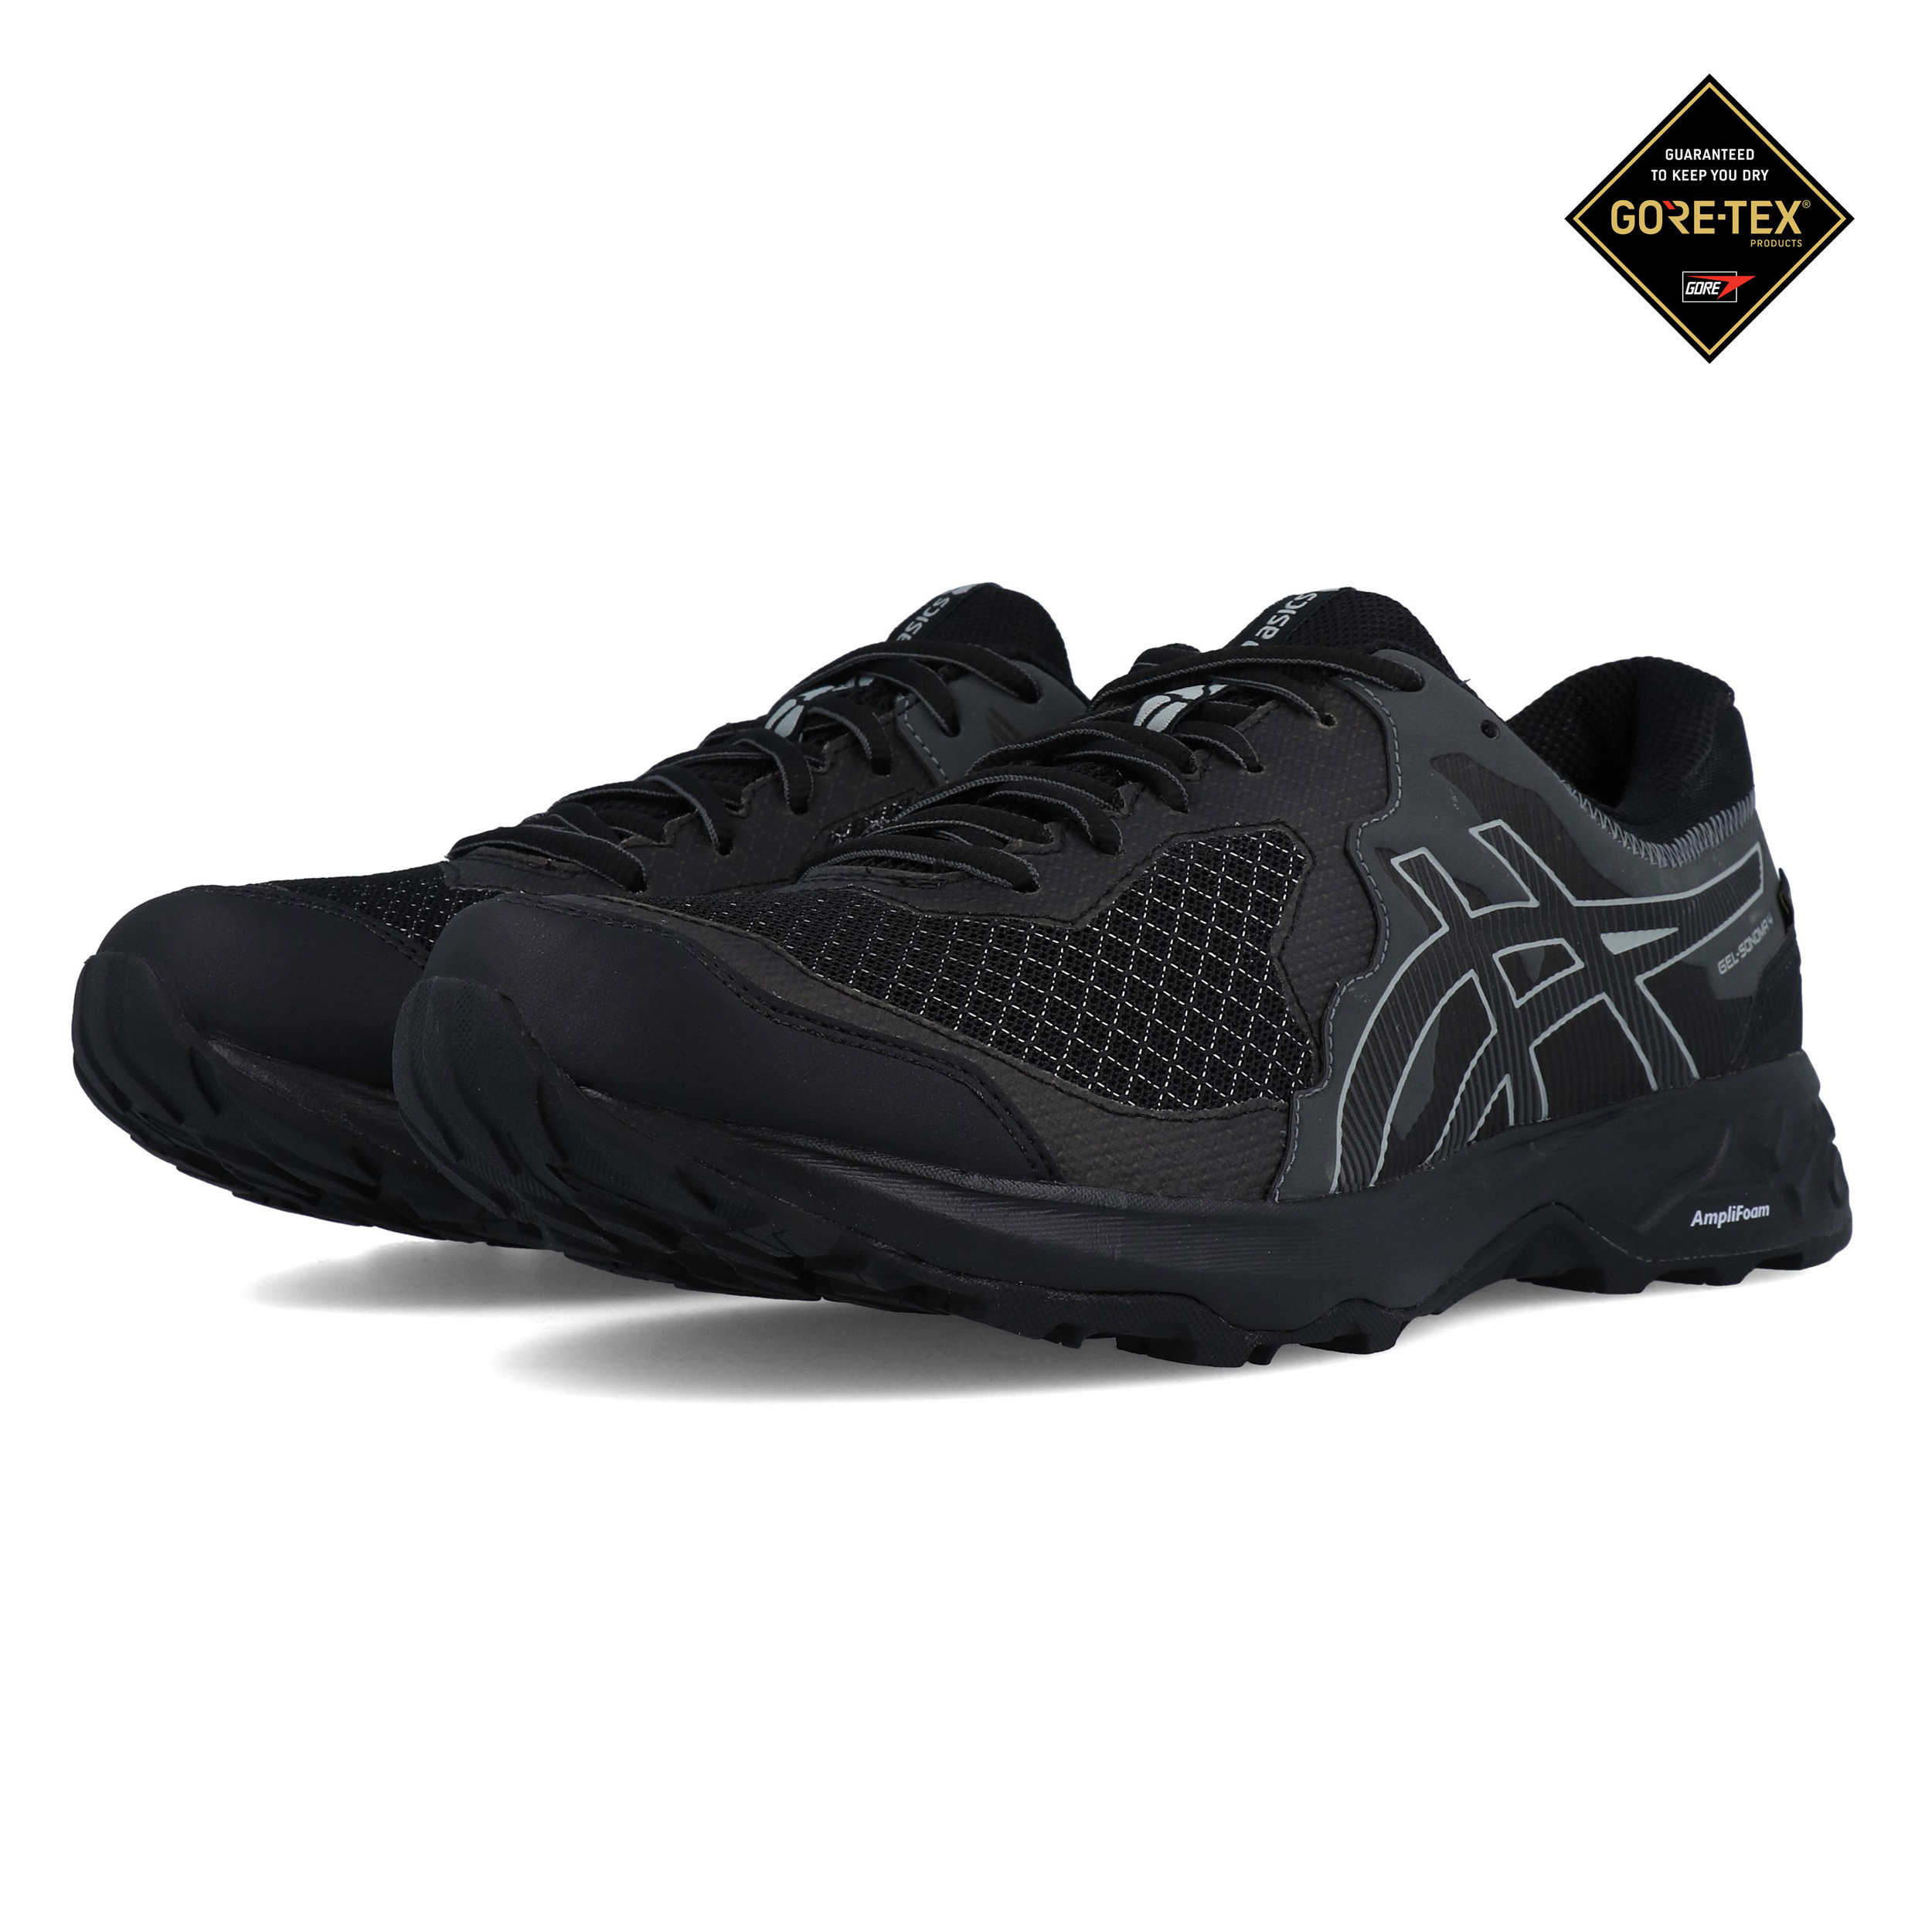 asics gore tex running shoes womens mujer